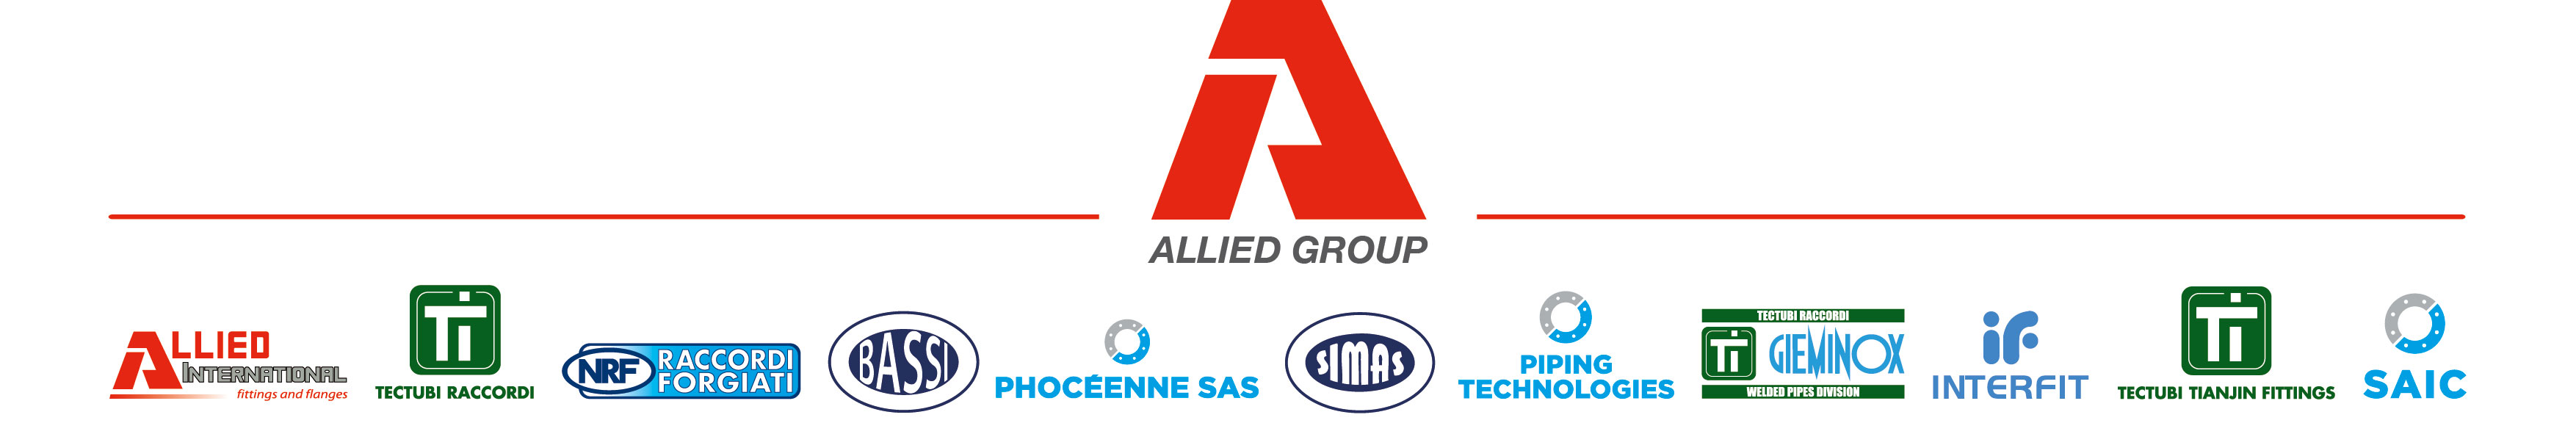 Logo Allied group